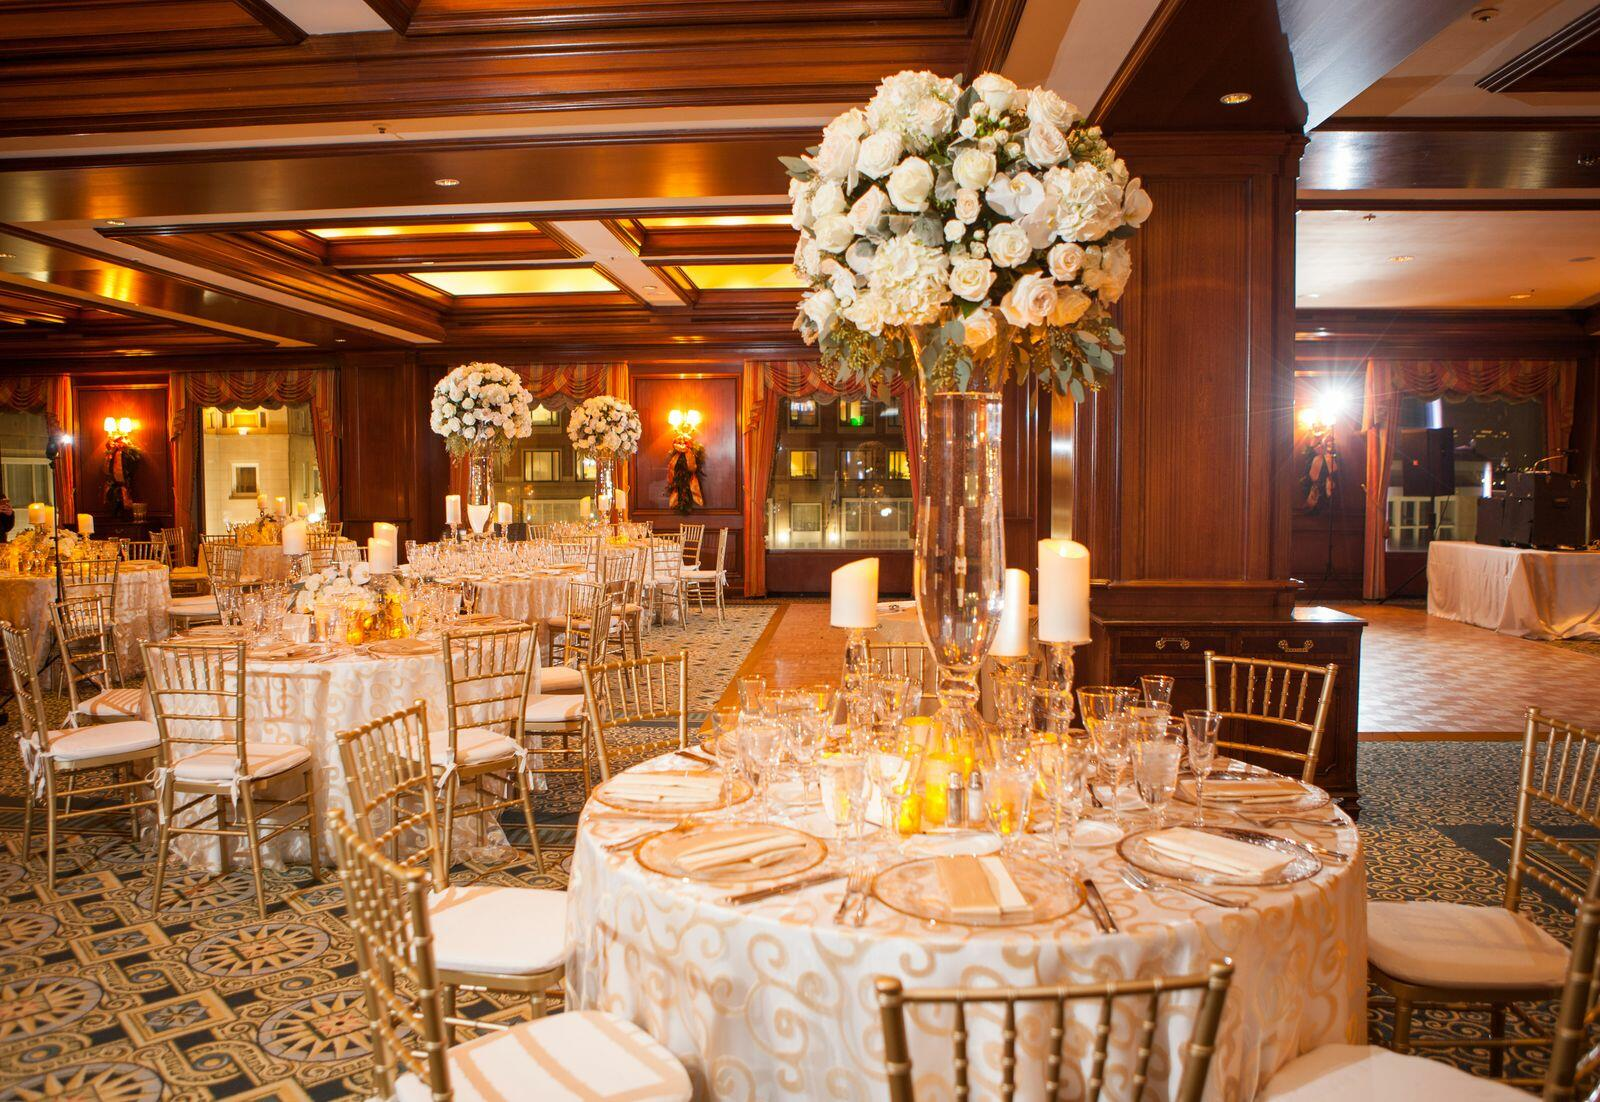 Event space set for wedding reception with large floral centerpi